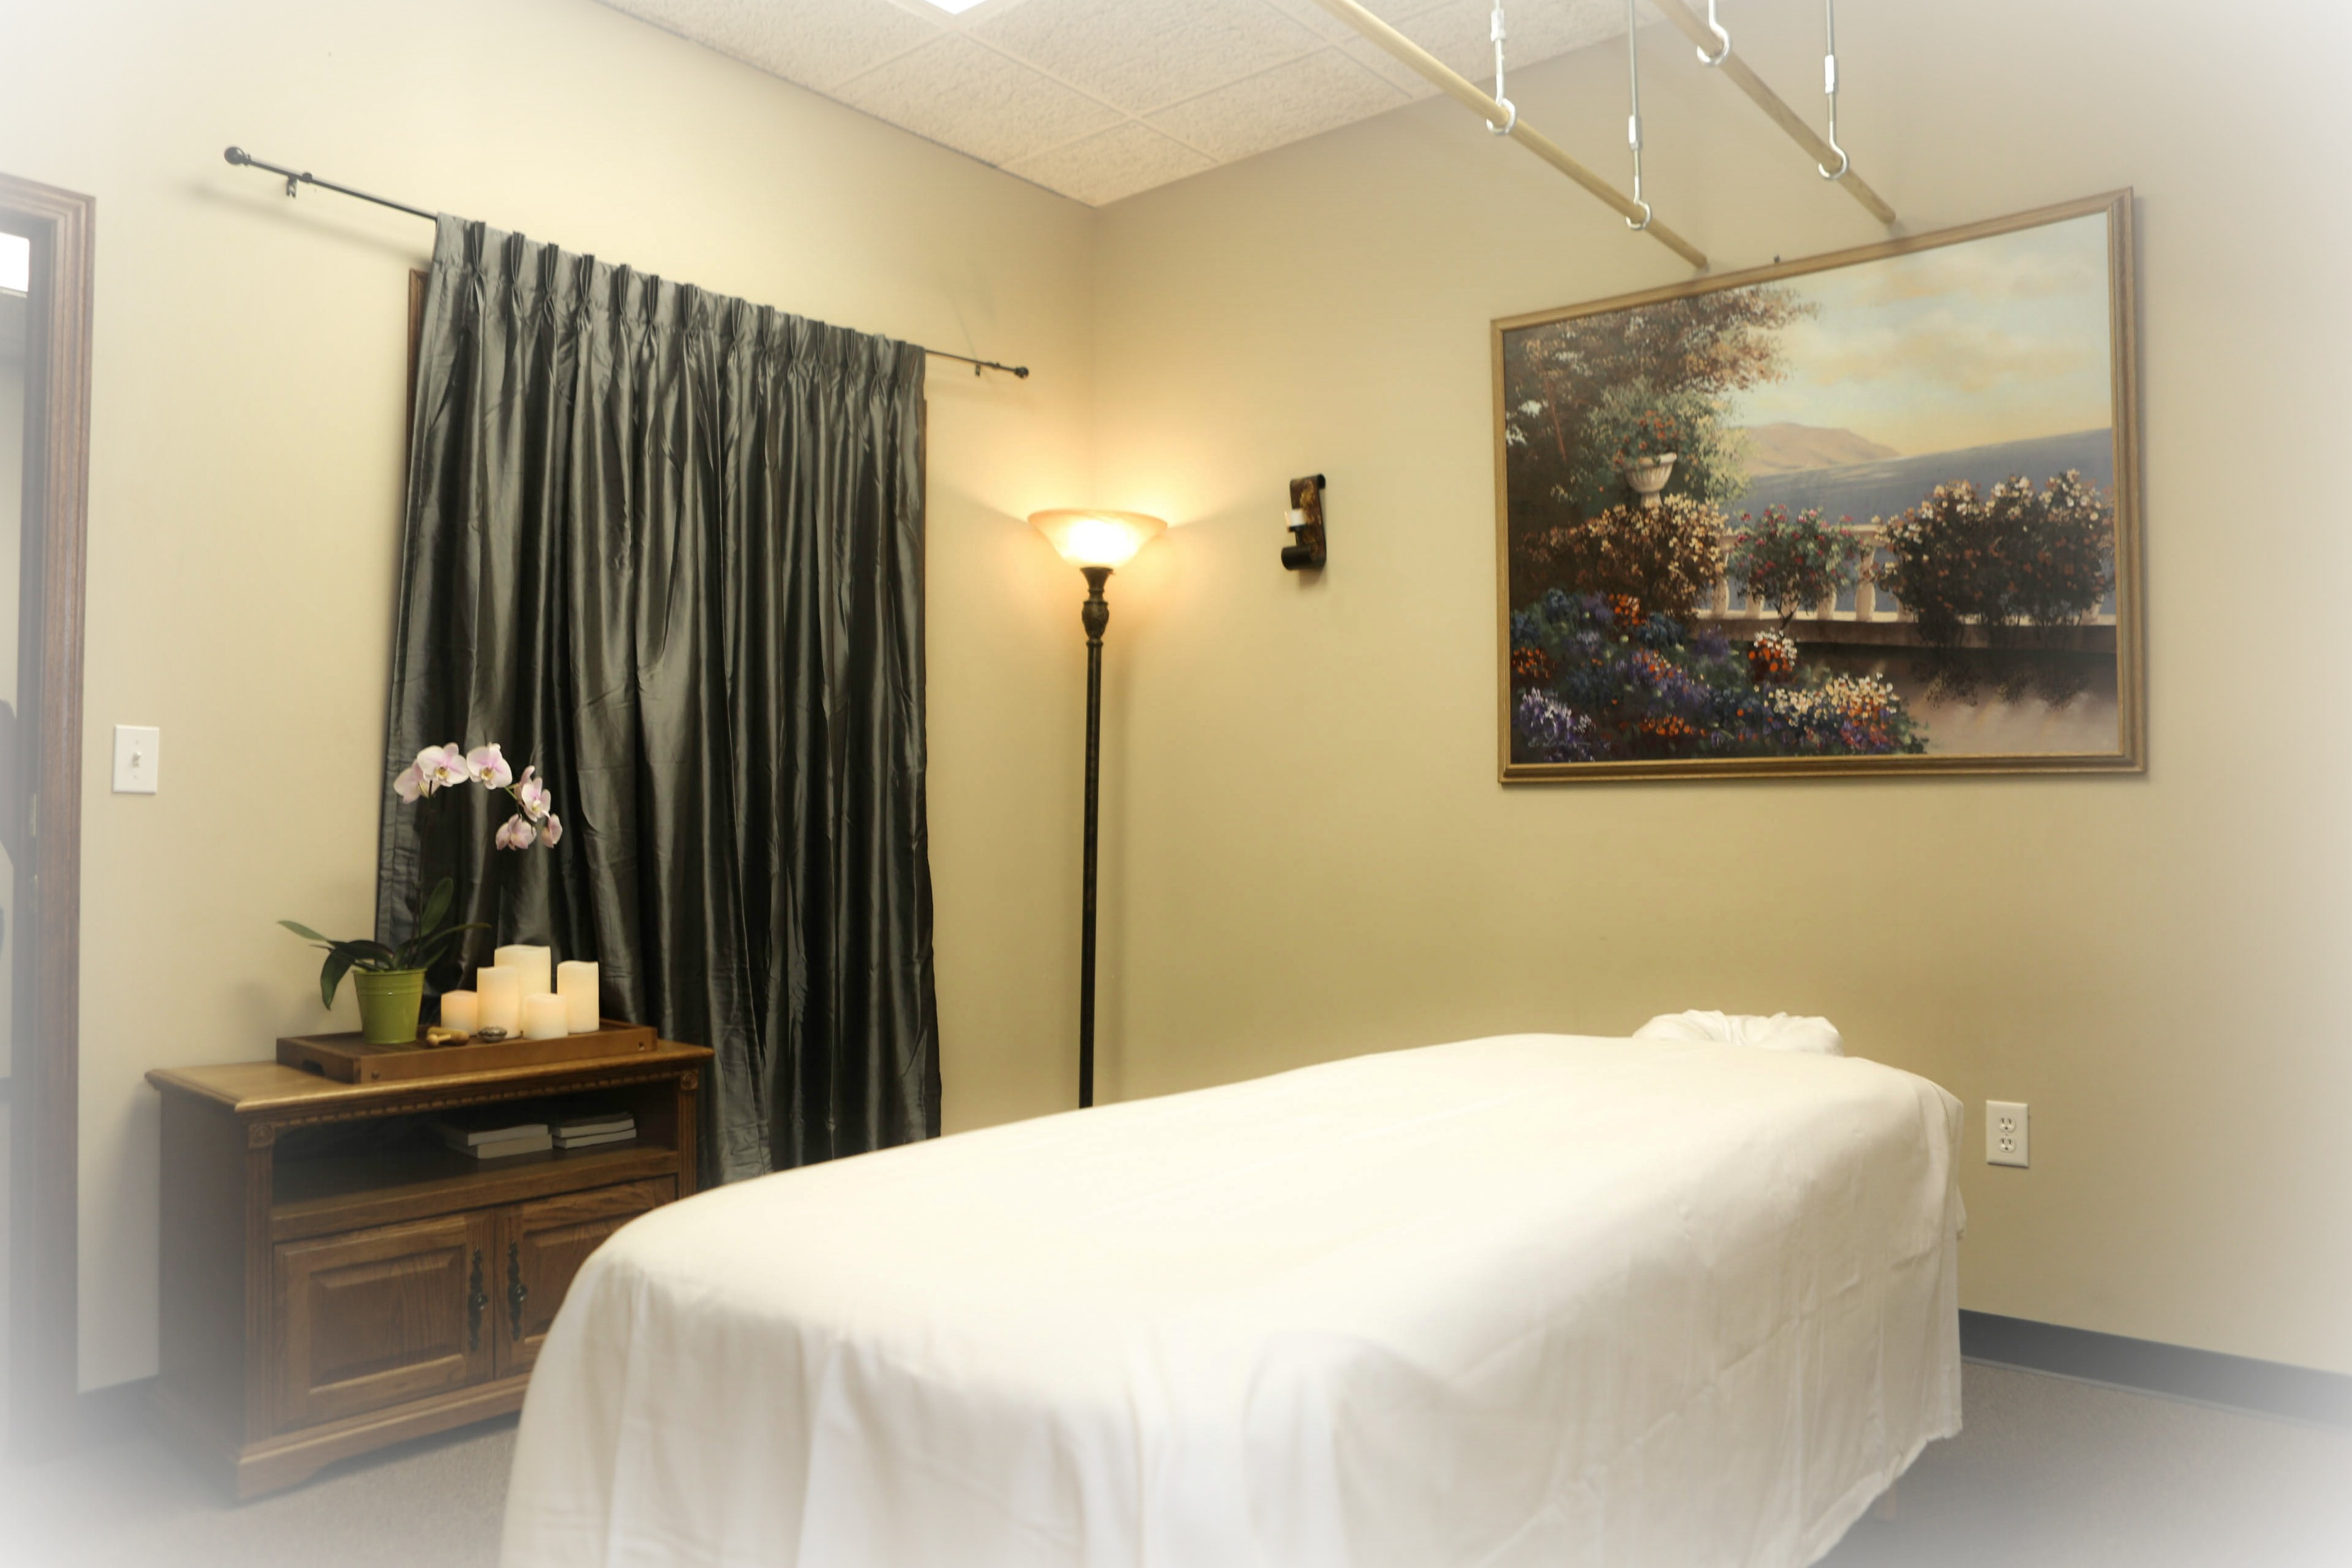 summers Massage therapy room